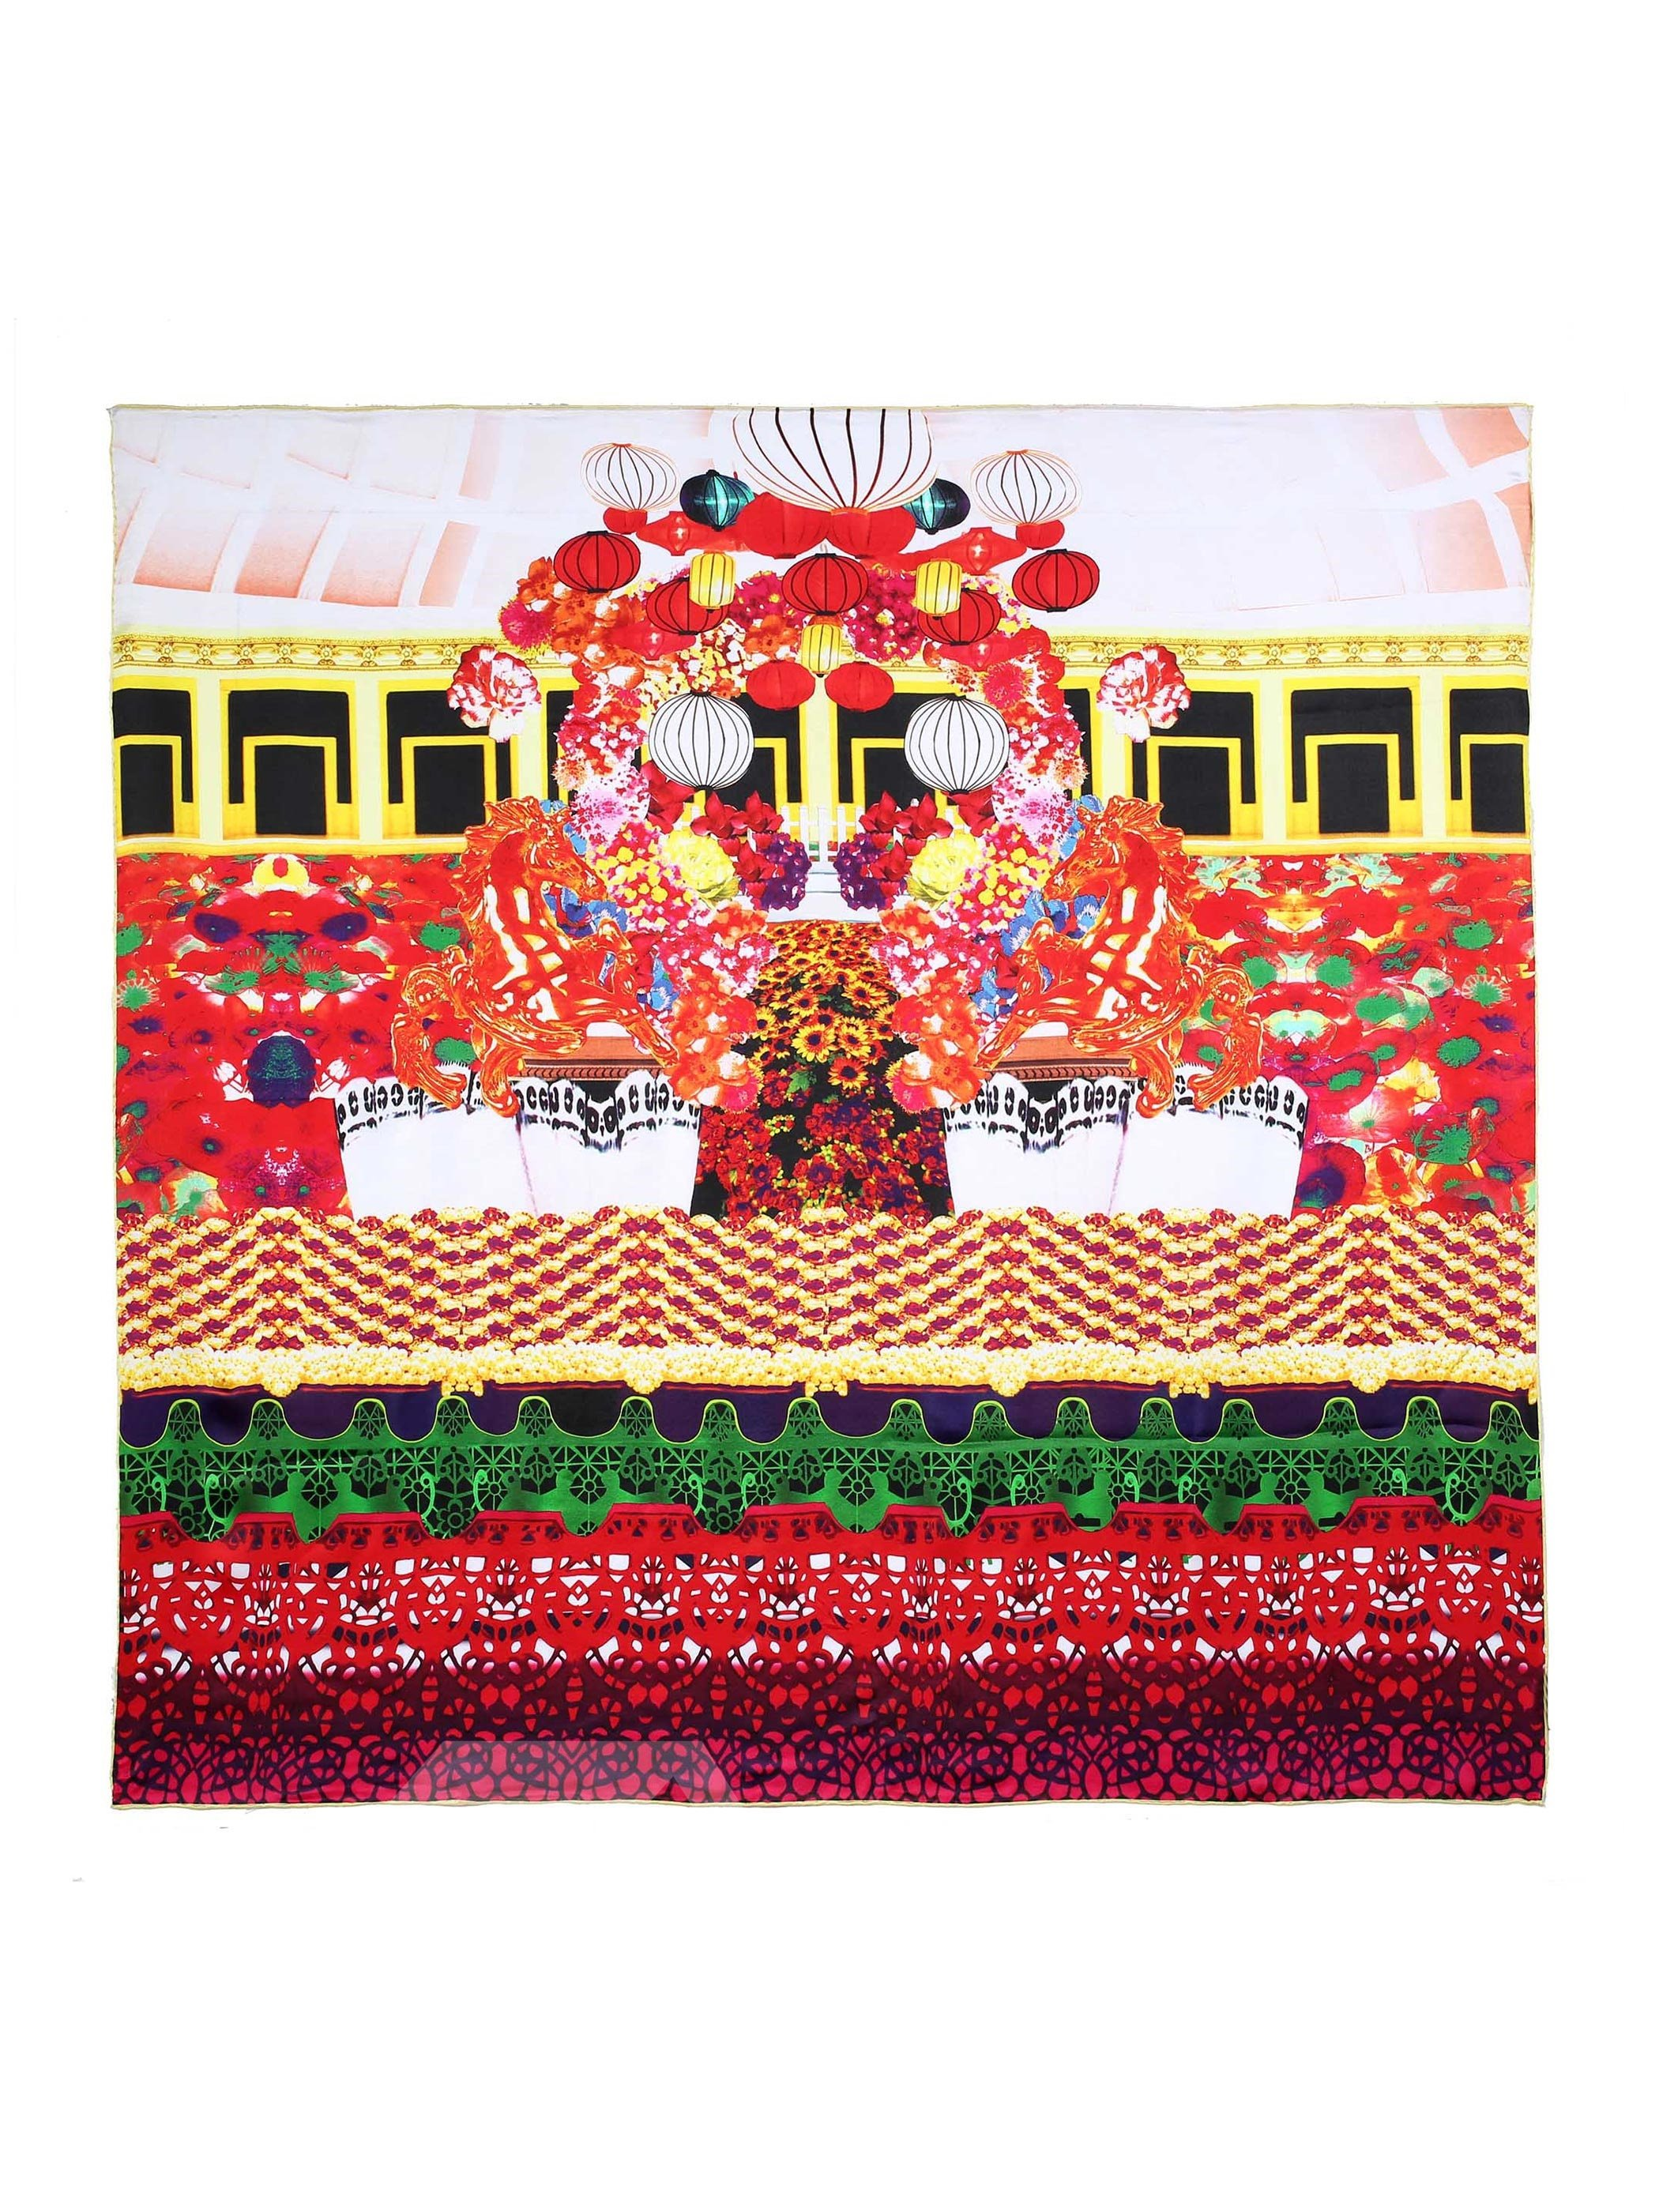 Red Lantern And Flower Tree Tent Beautiful Square Silk Scarf